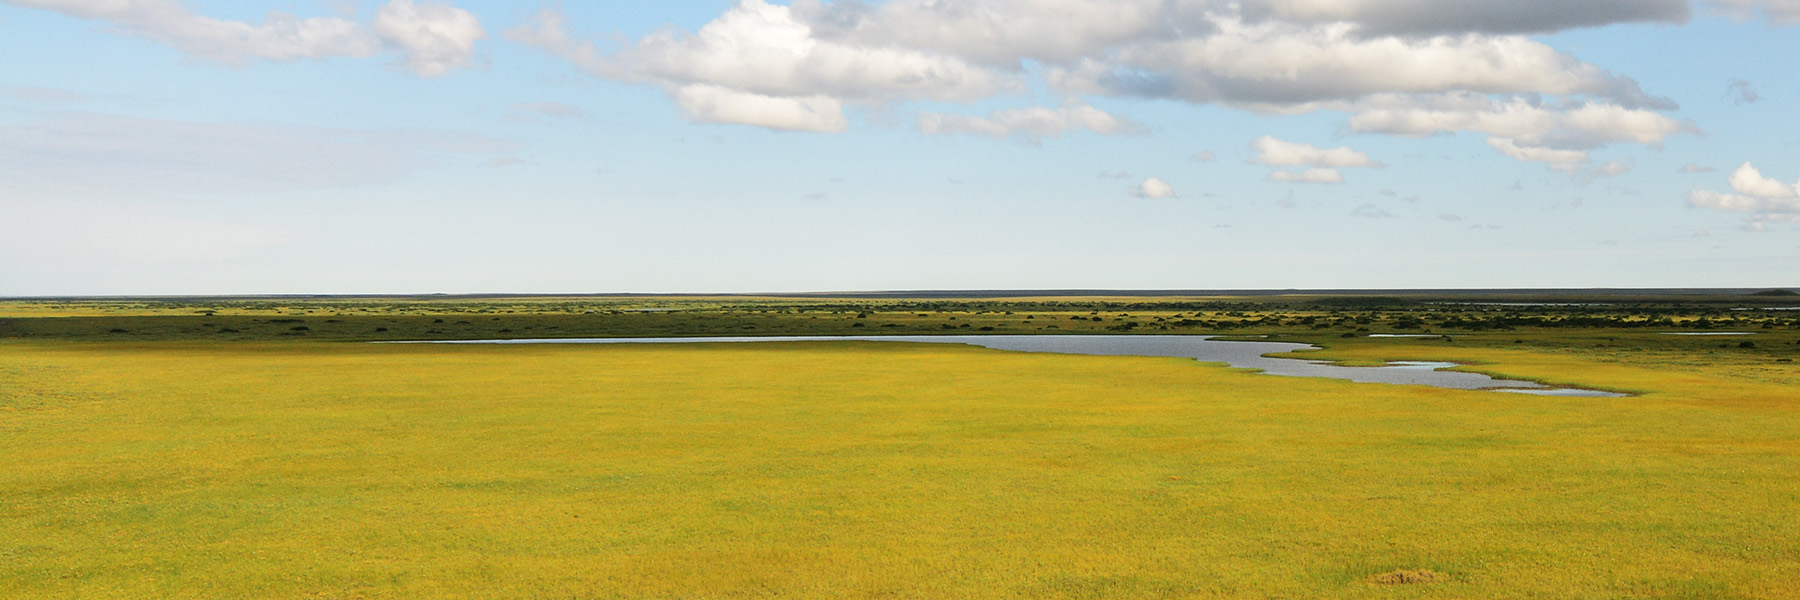 The endless green tundra and wetlands of Alaska's North Slope